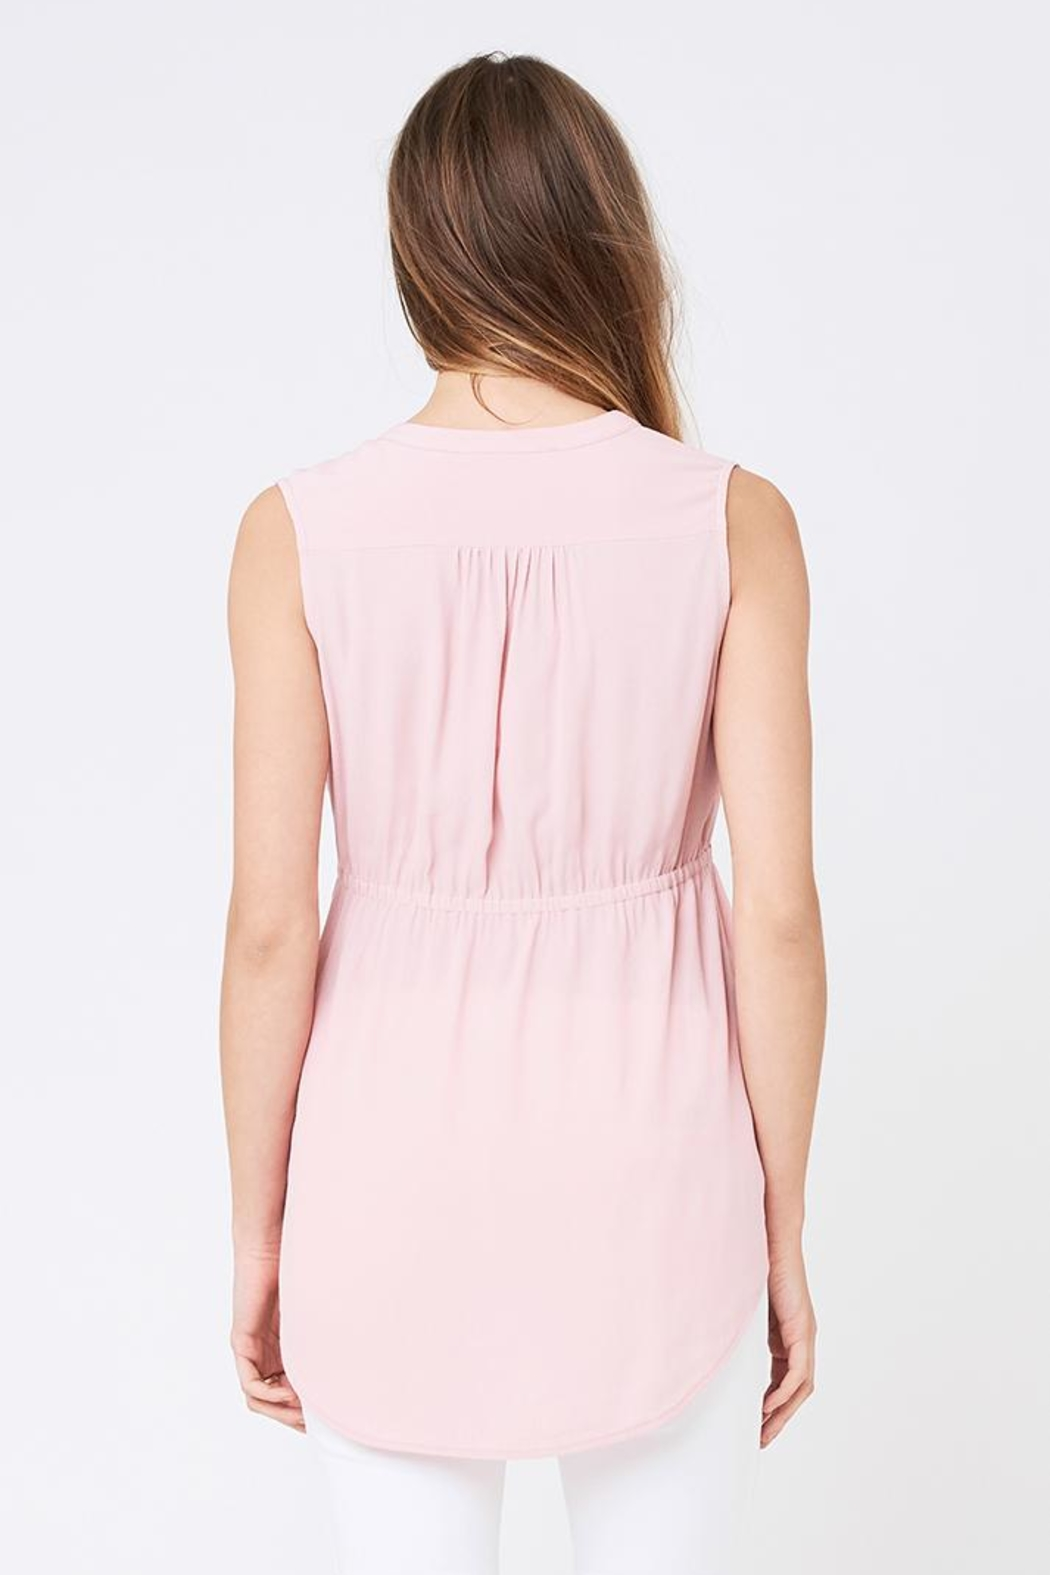 Ripe Maternity April Tunic - Pink - Side Cropped Image